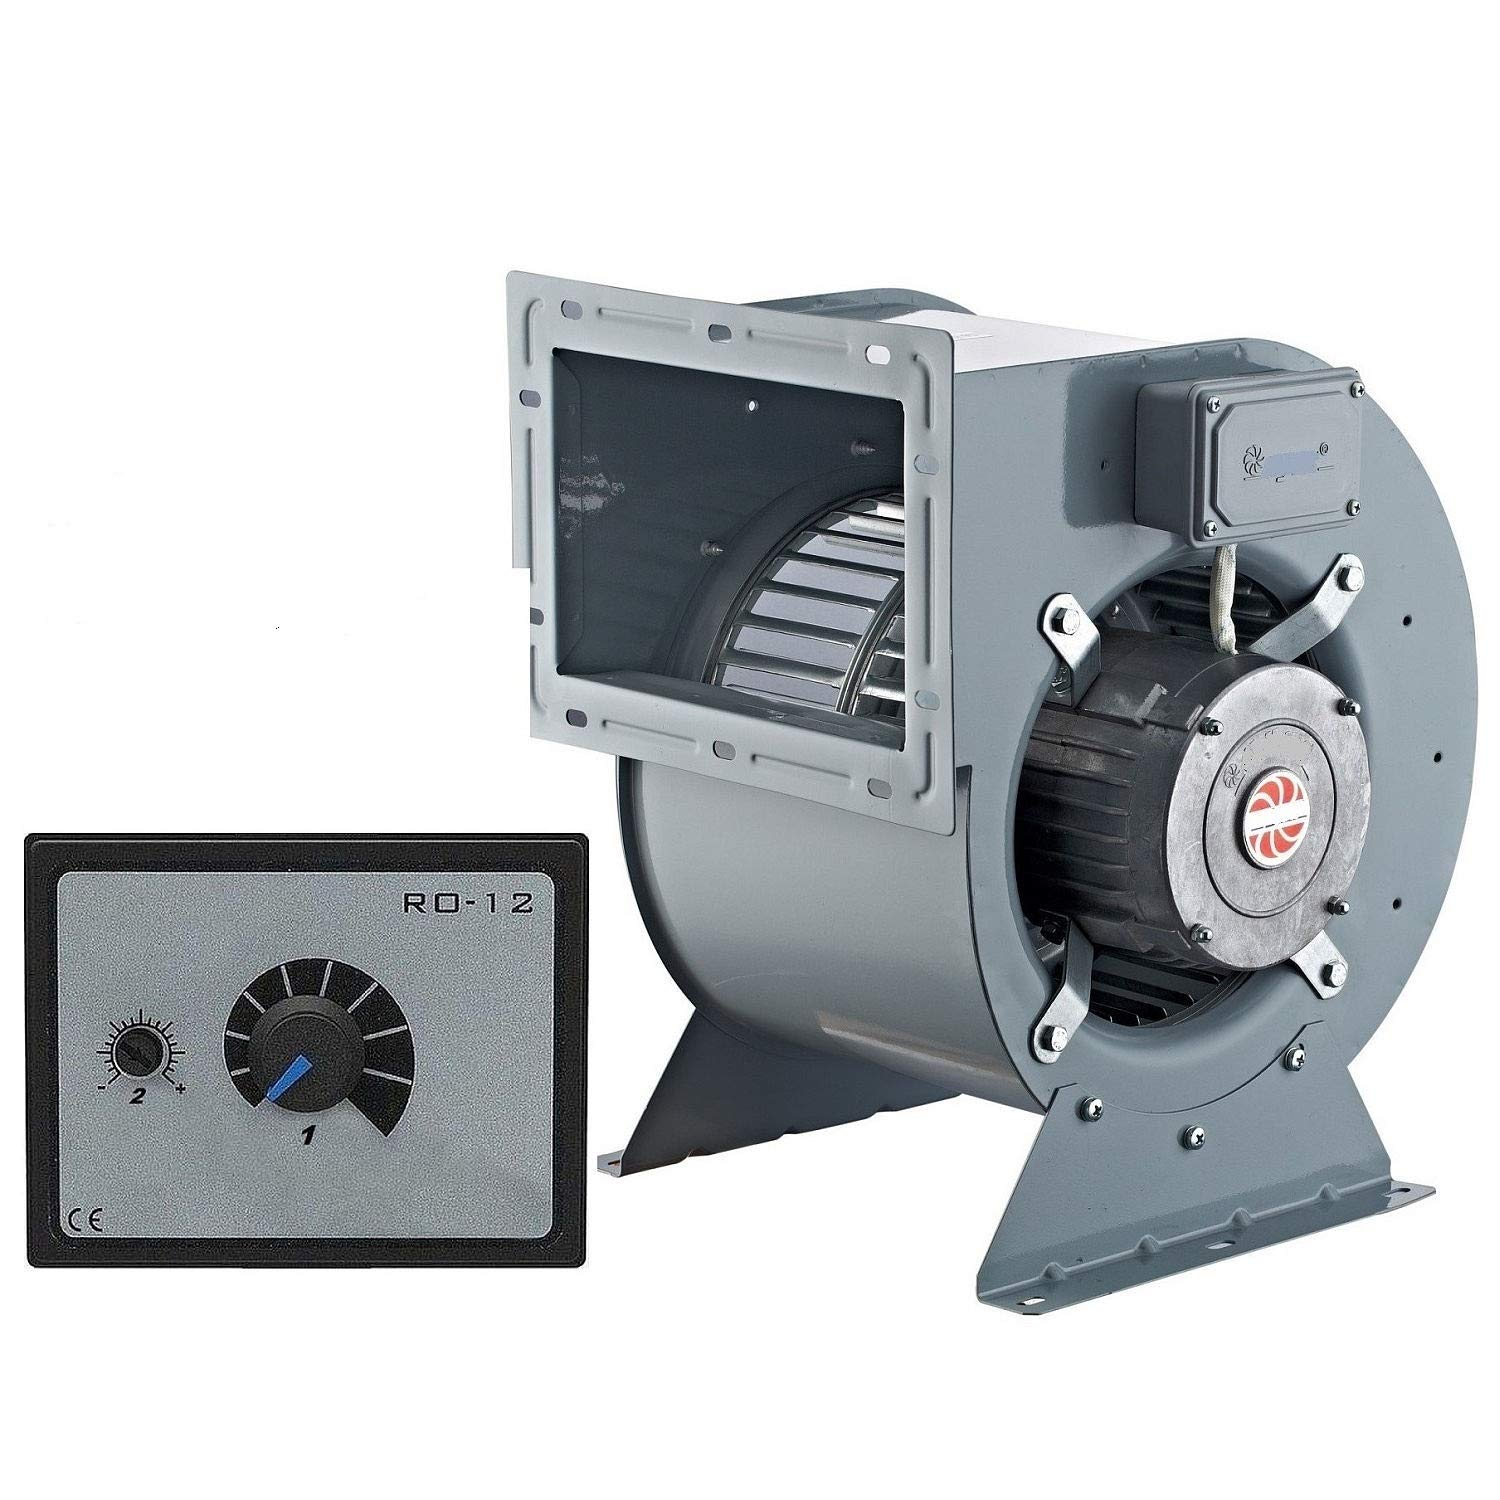 Industrial Silent Fan BLOWER with 500W SPEED CONTROLLER CONTROL Regulator duct extractor industrial fan blower Fume Extract Commercial centrifugal Radial fan ventilation extractor ducting Industrial Centrifugal Fan Extractor ventilation Commercial Radial M